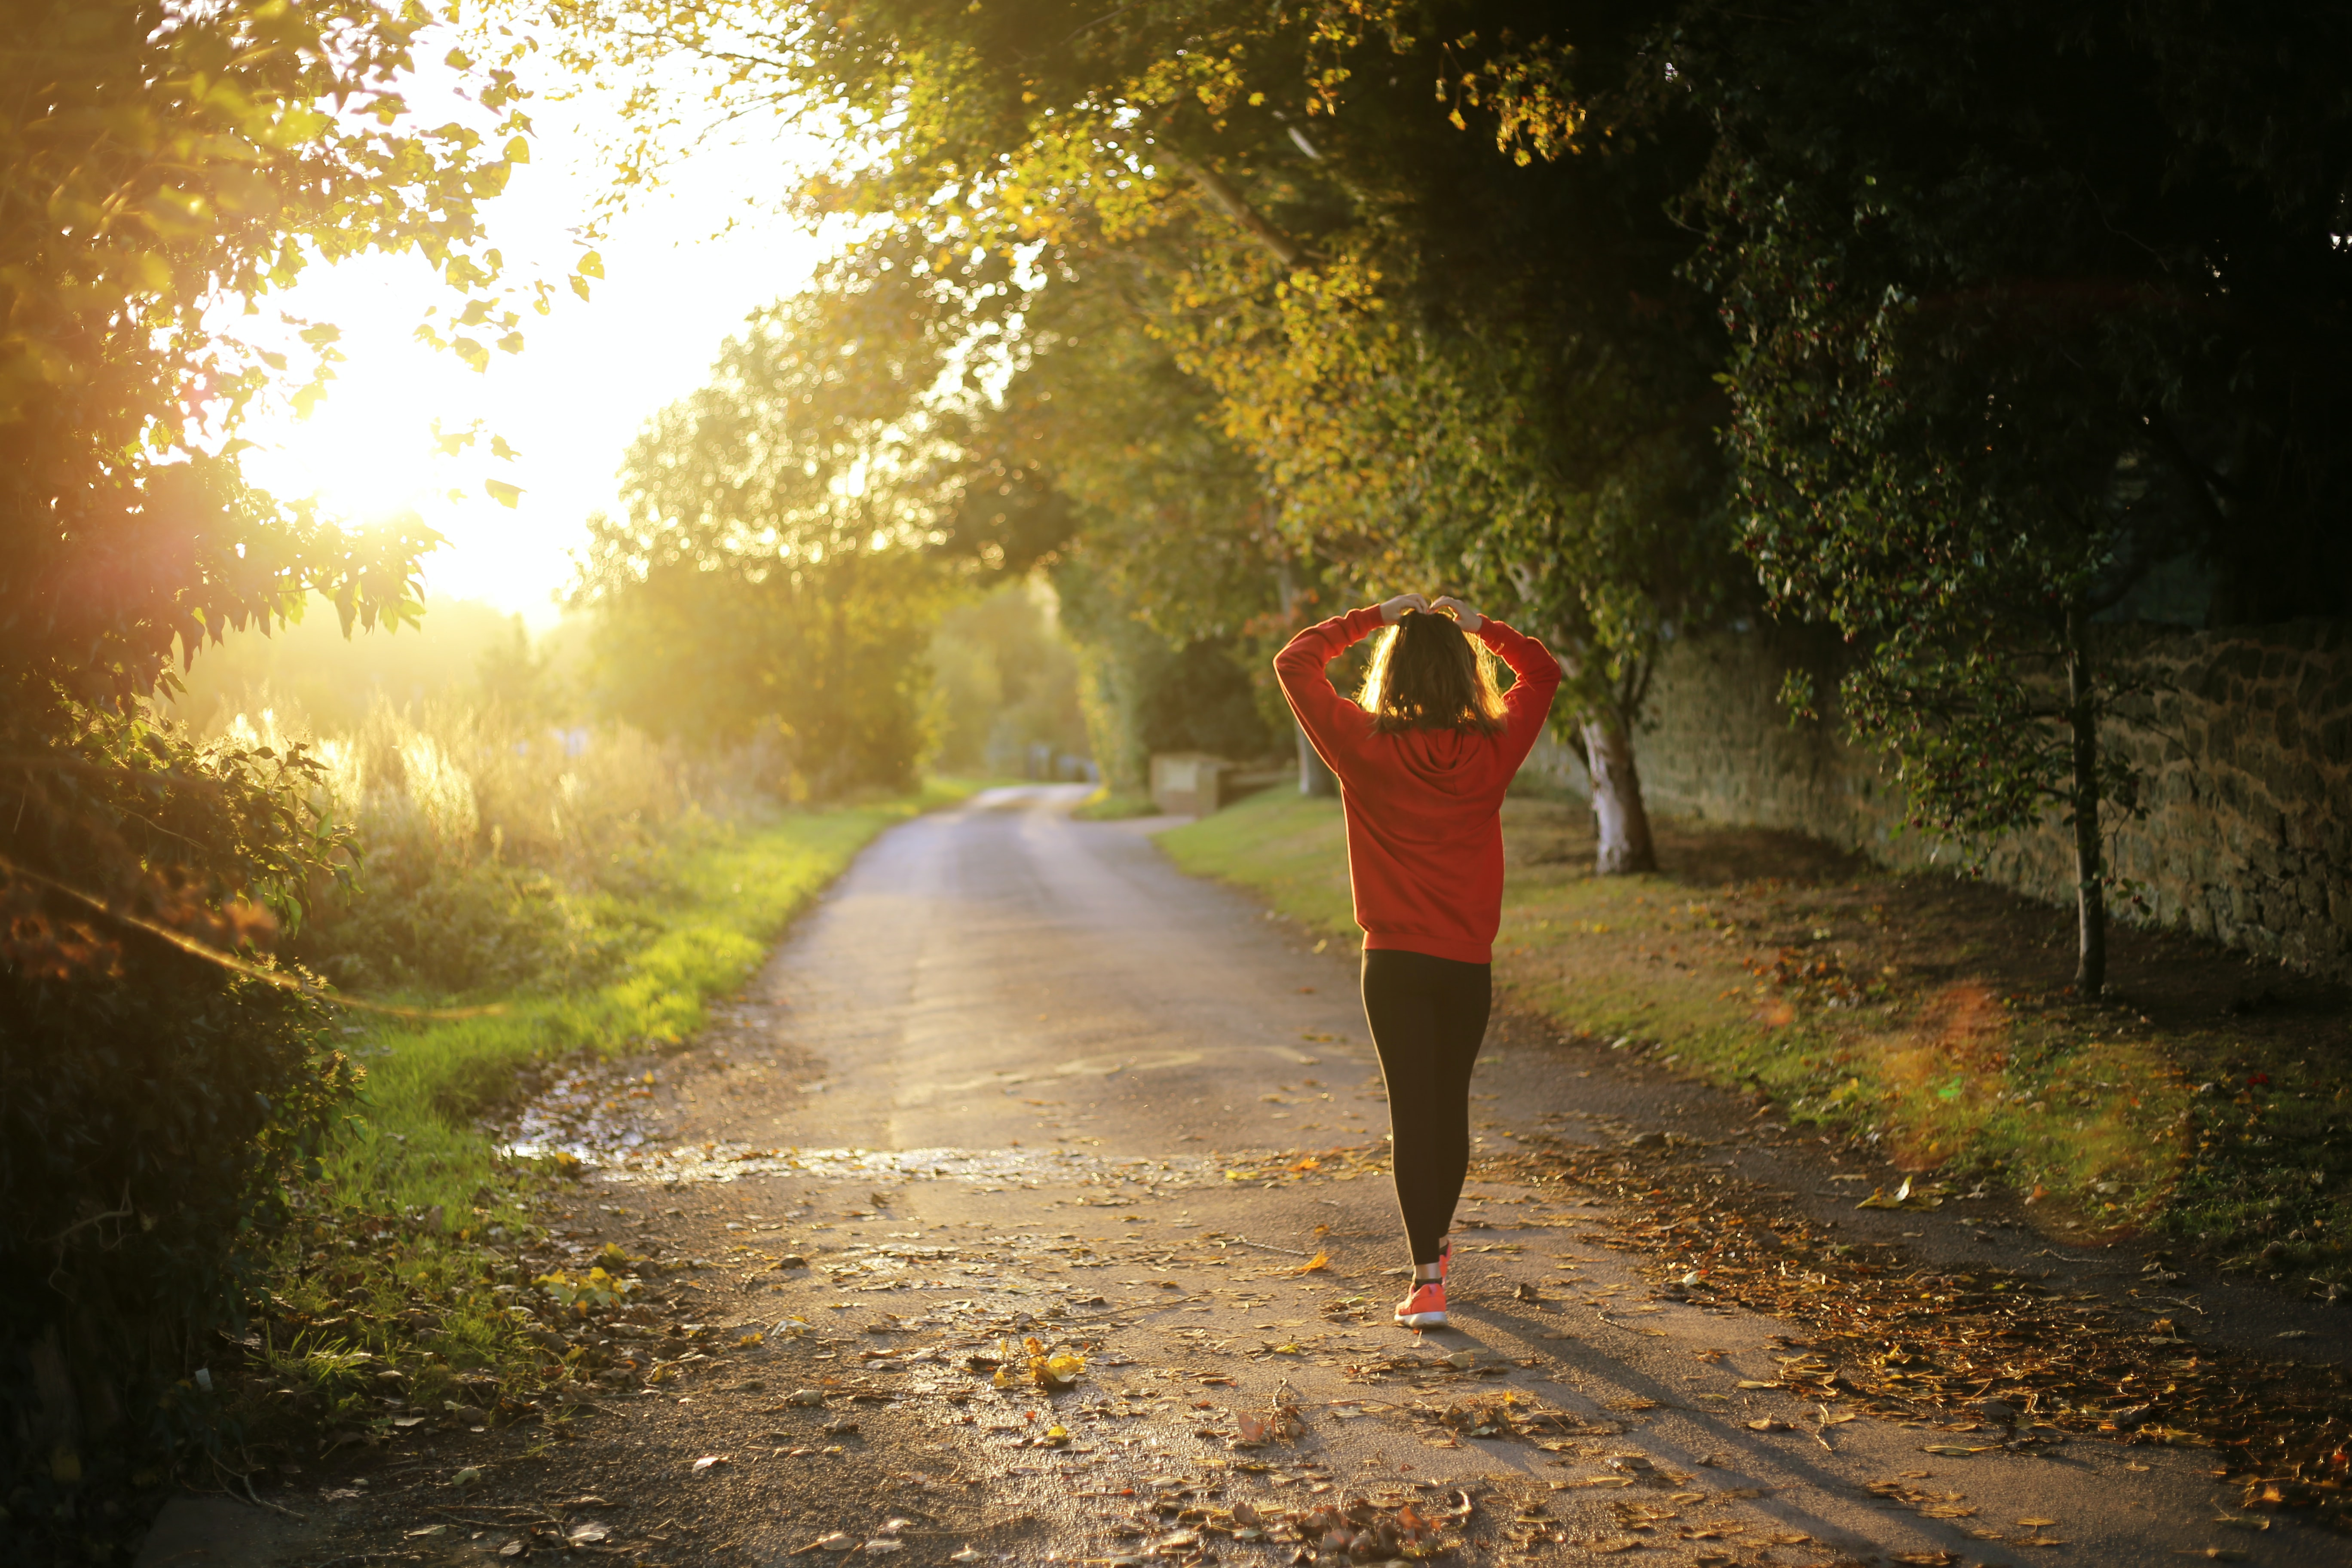 Different Metabolic Effects of Morning Exercise vs. Evening